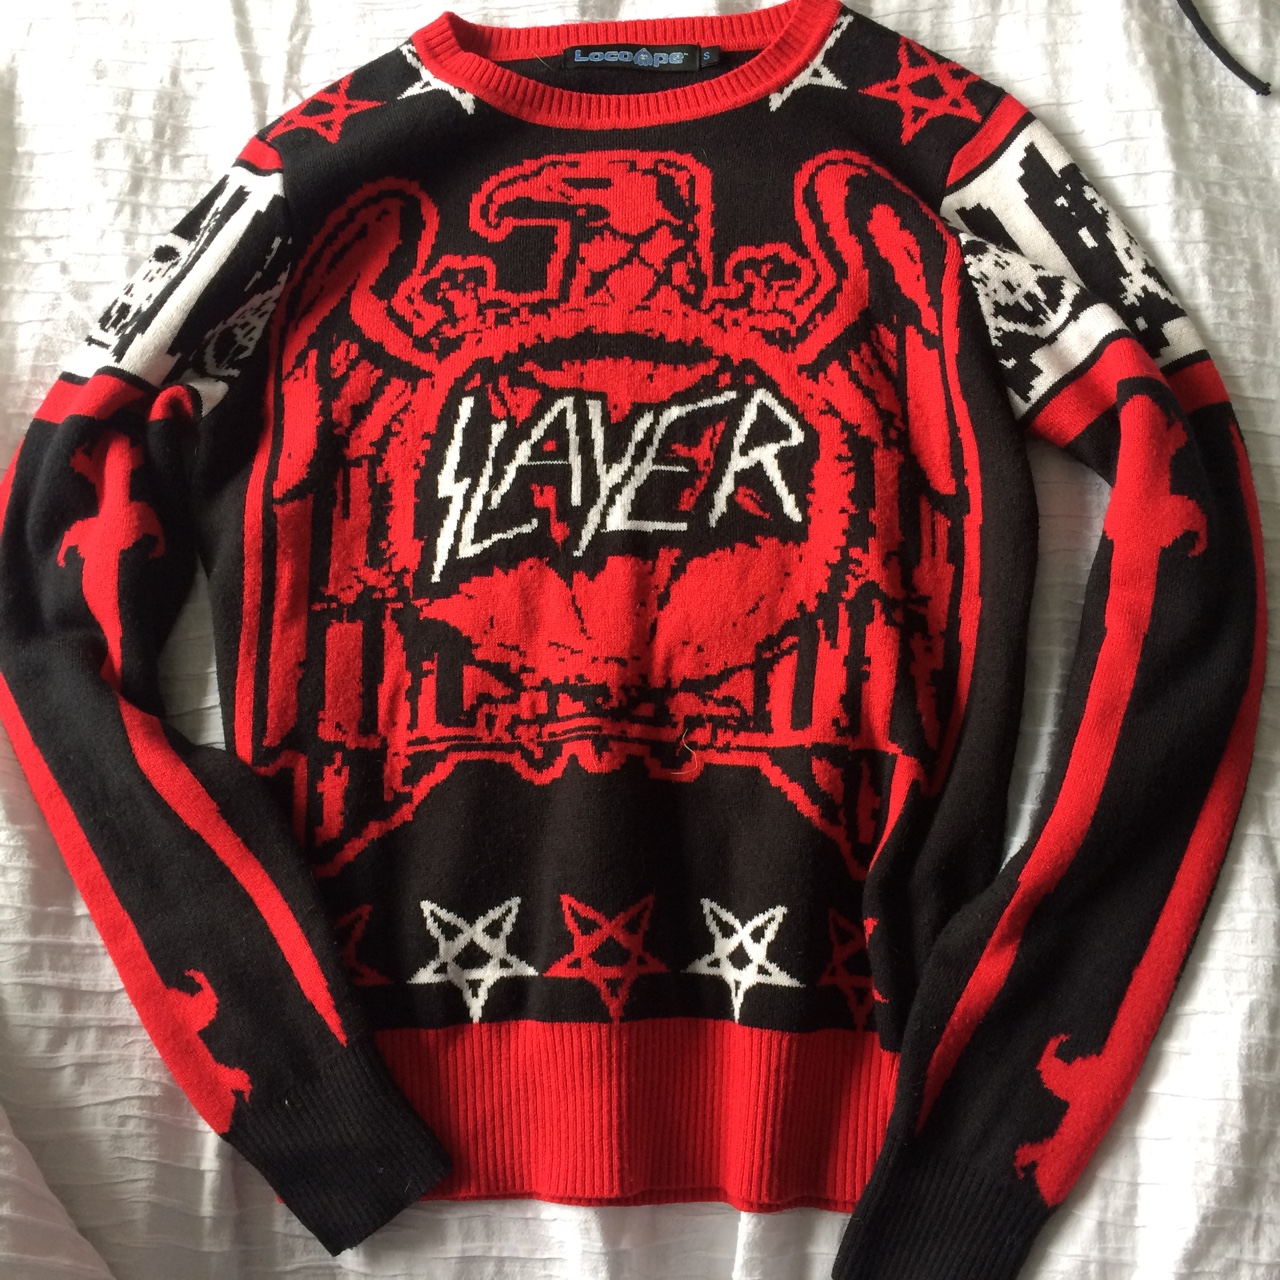 Heavy Metal Christmas.Heavy Metal Christmas Jumper By Slayer Size Small Depop